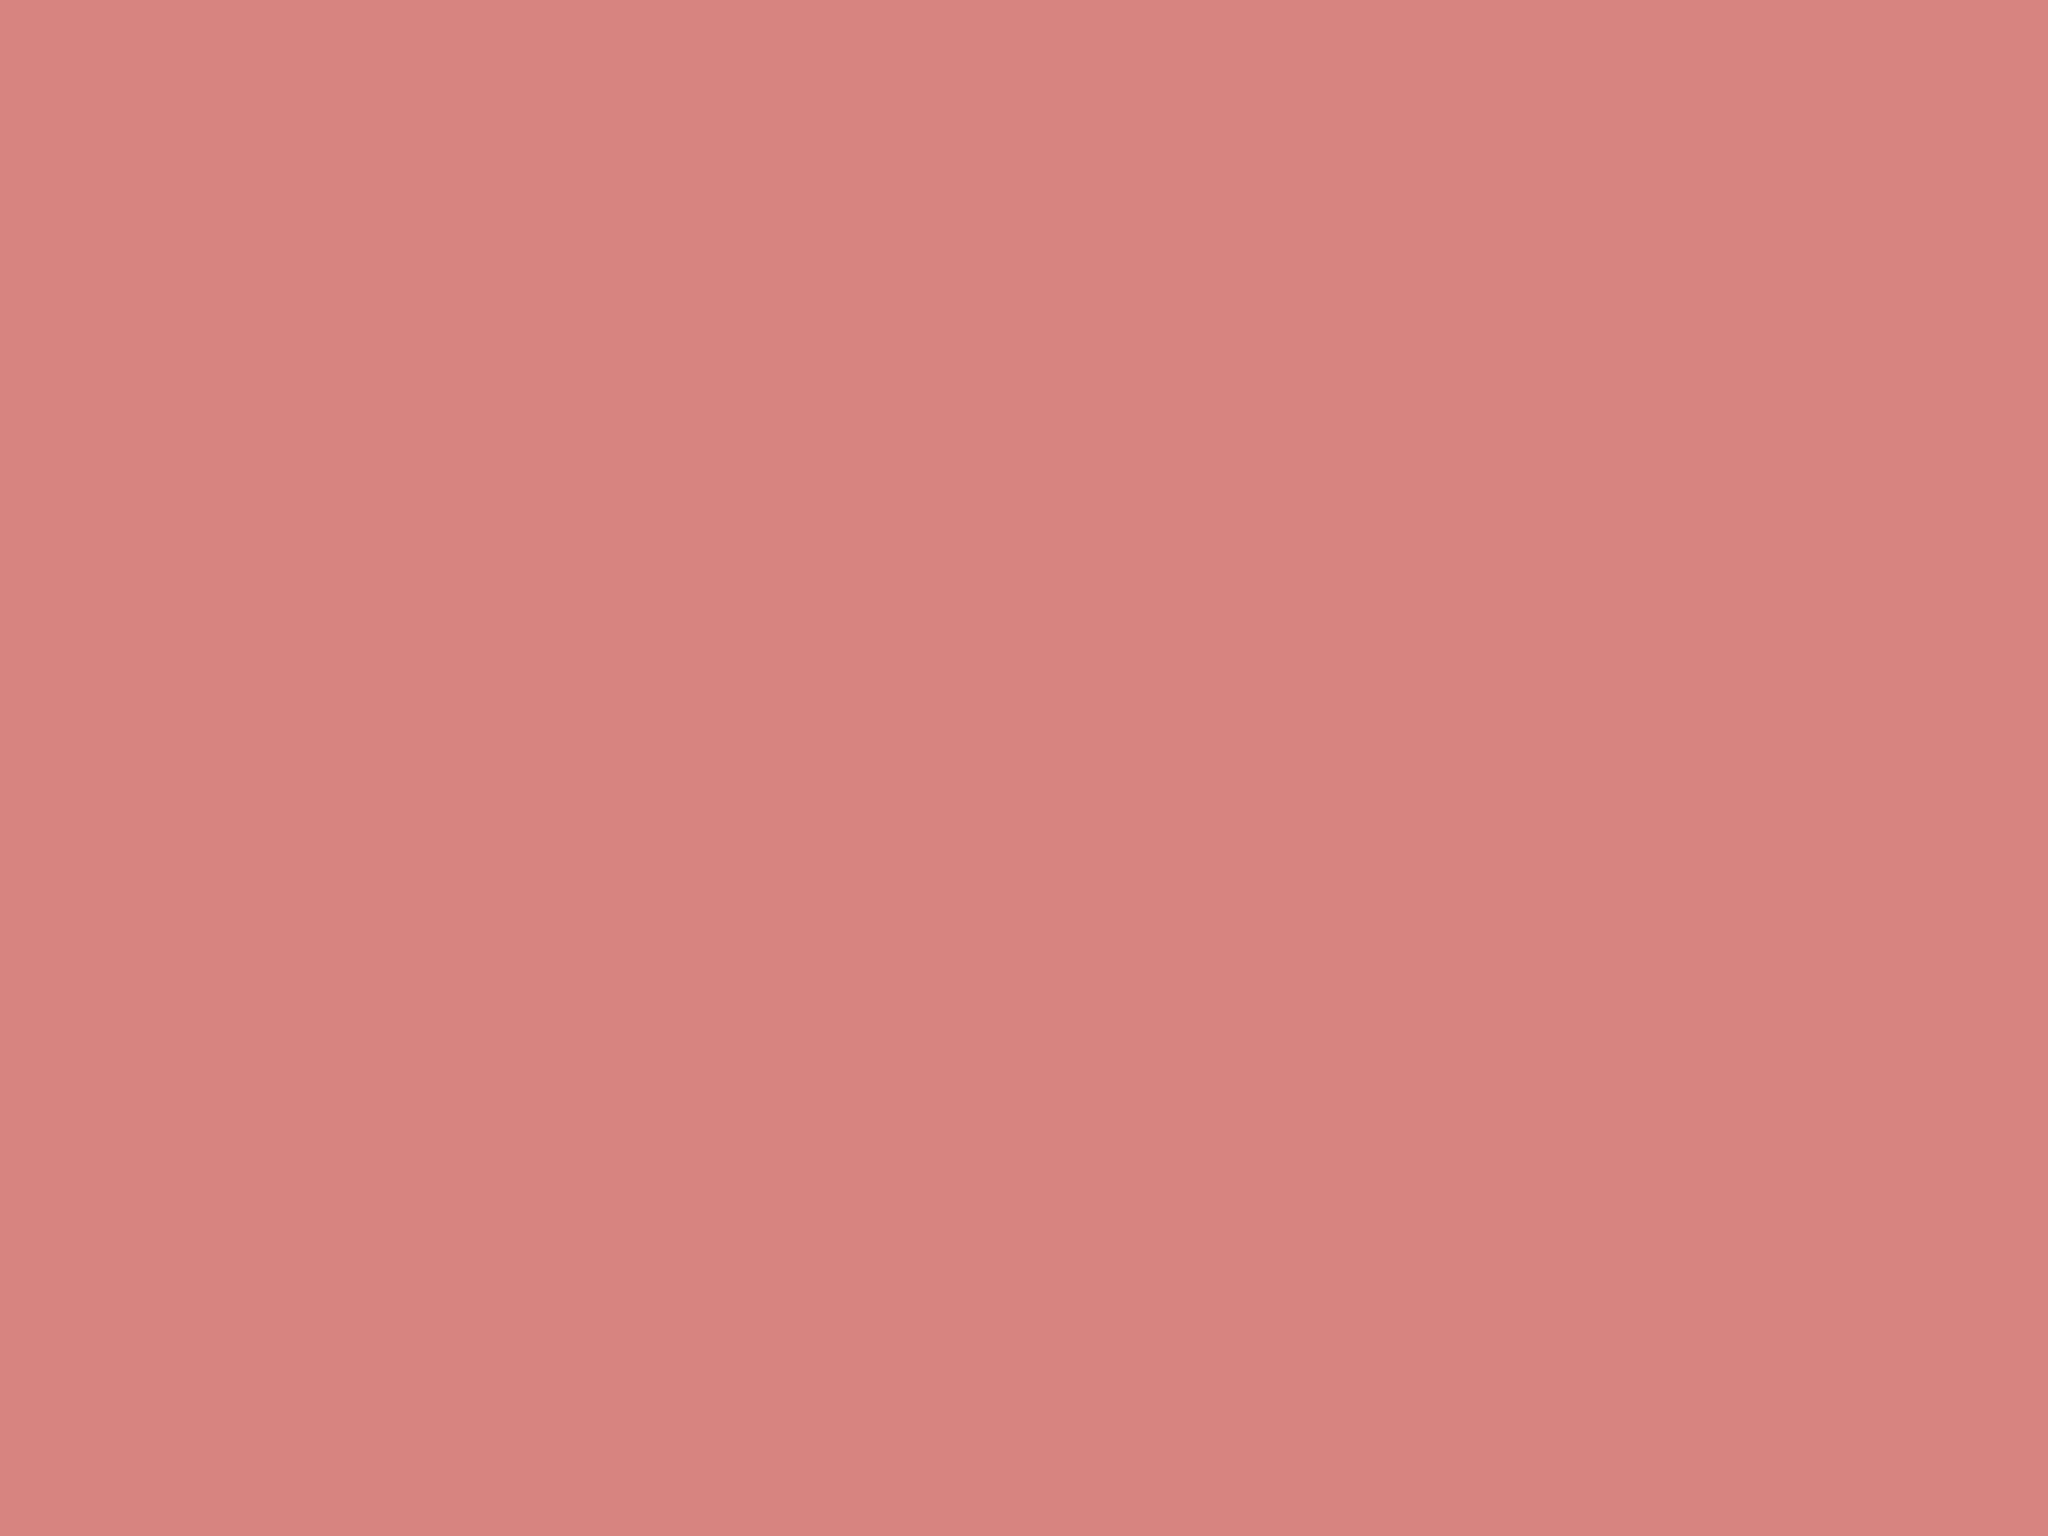 2048x1536 New York Pink Solid Color Background